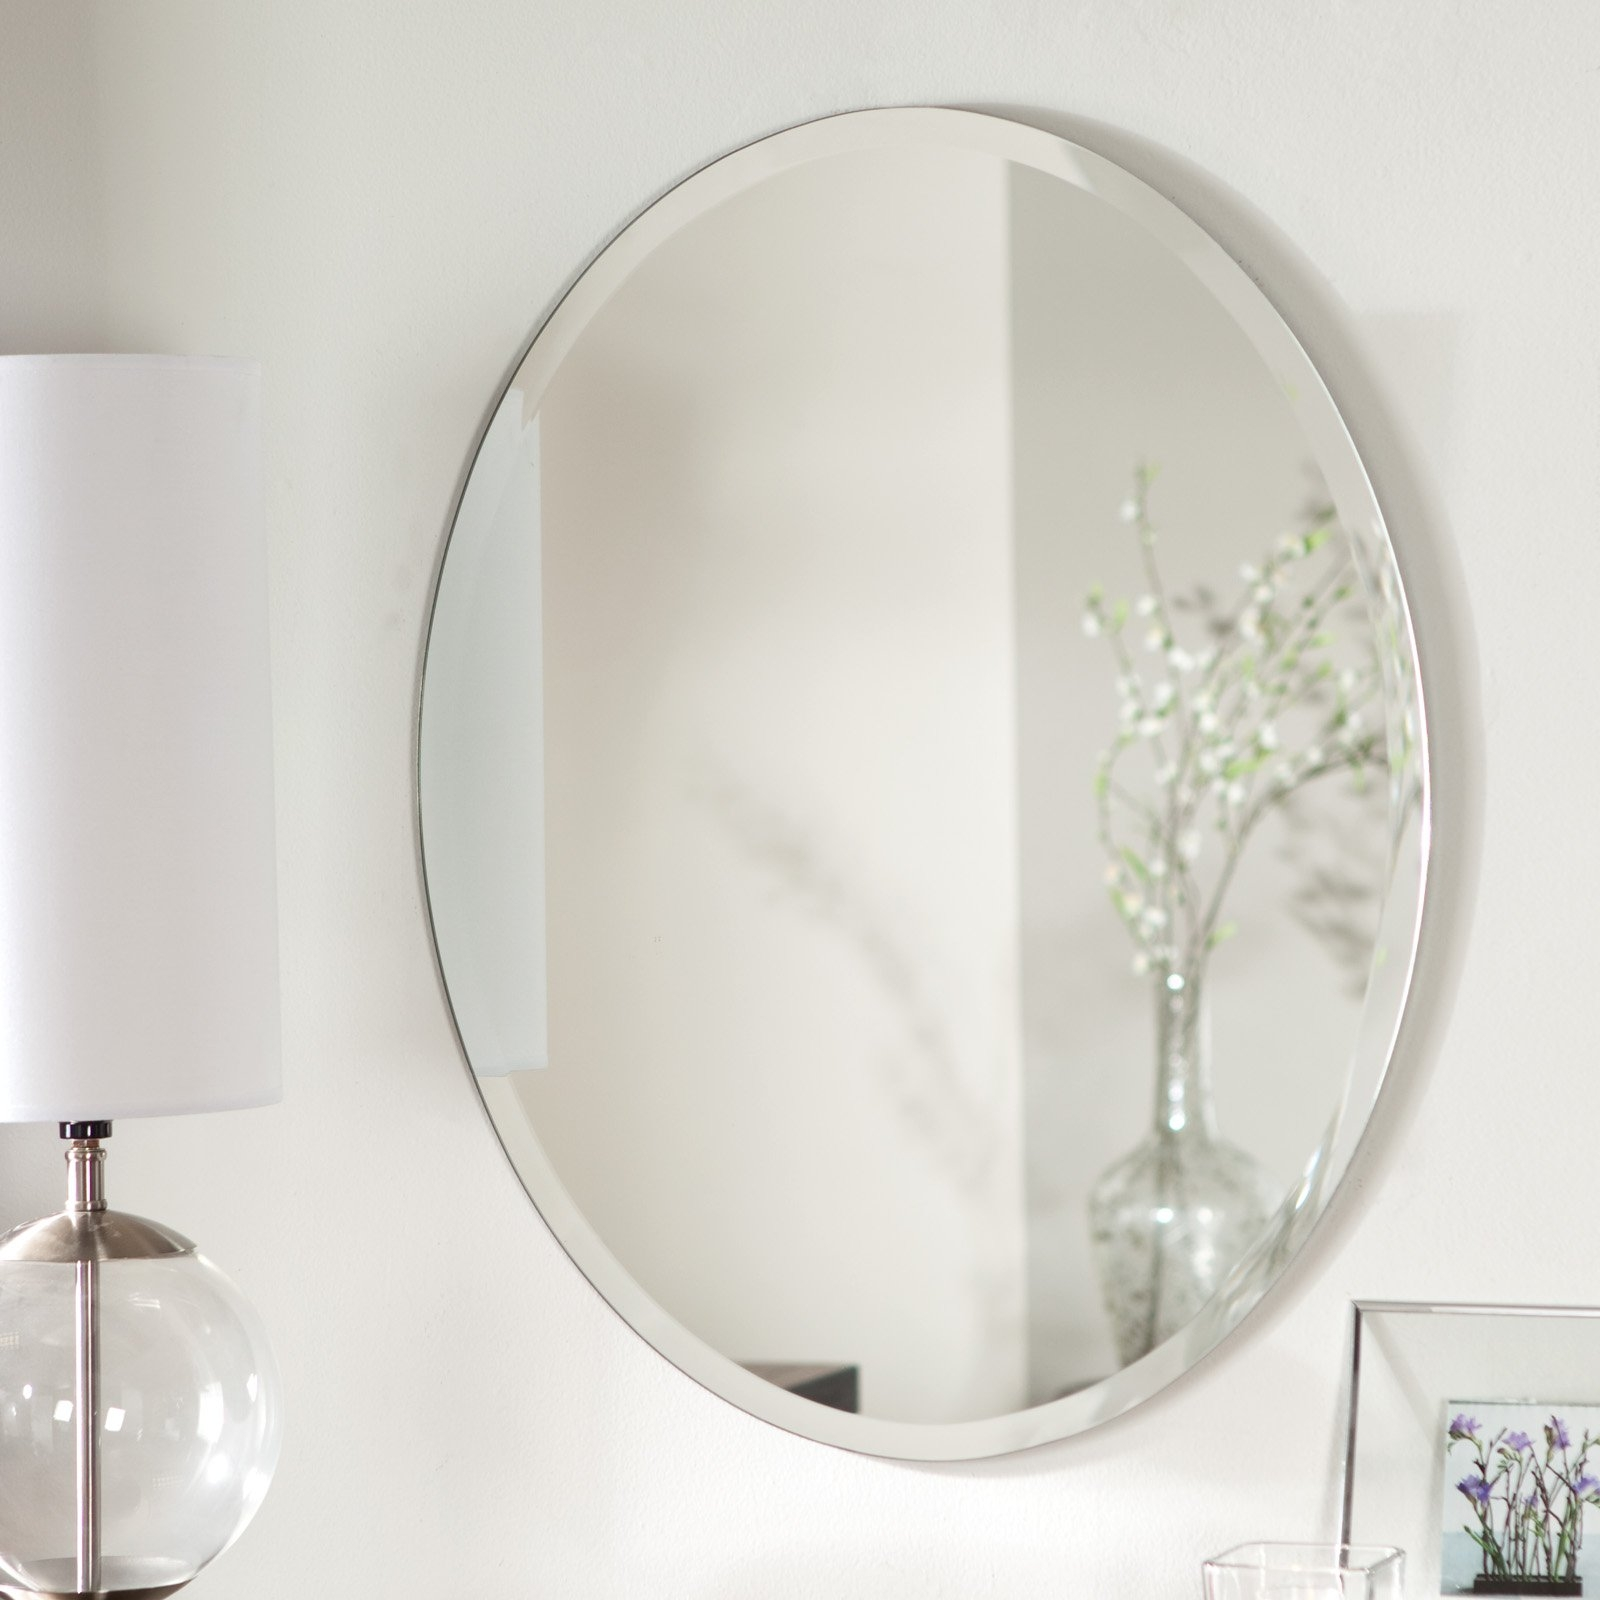 Frameless Round Mirrors For Walls